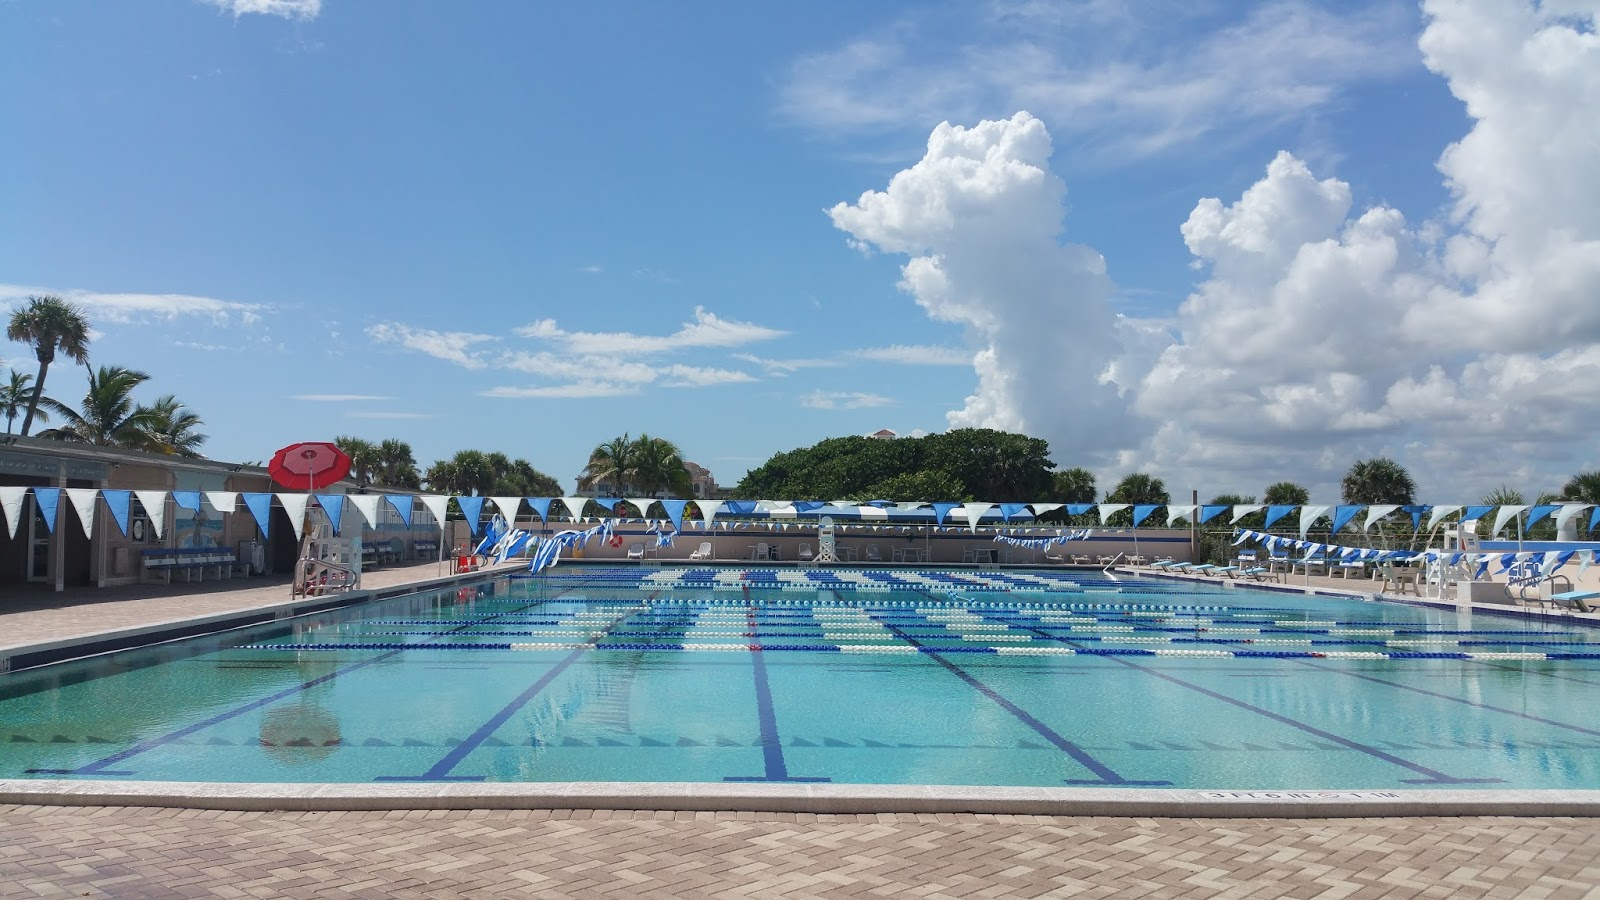 An Alternative To Lake Worth S Pool Image Above Is The County At Lytal A Very Well Maintained Facility Not Far Away News From City